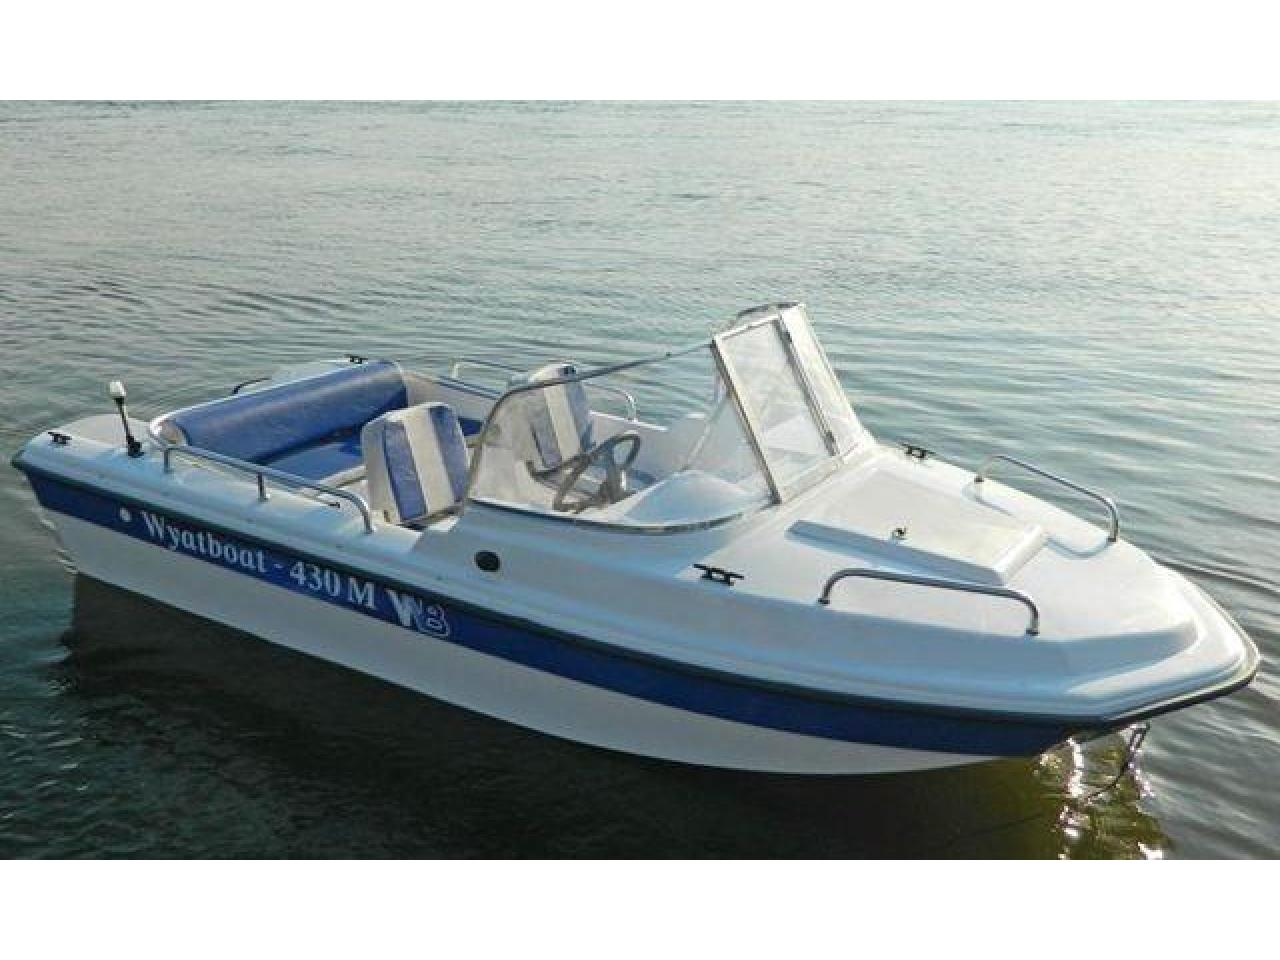 Новый катер Wyatboat 430M тримаран - 1/8